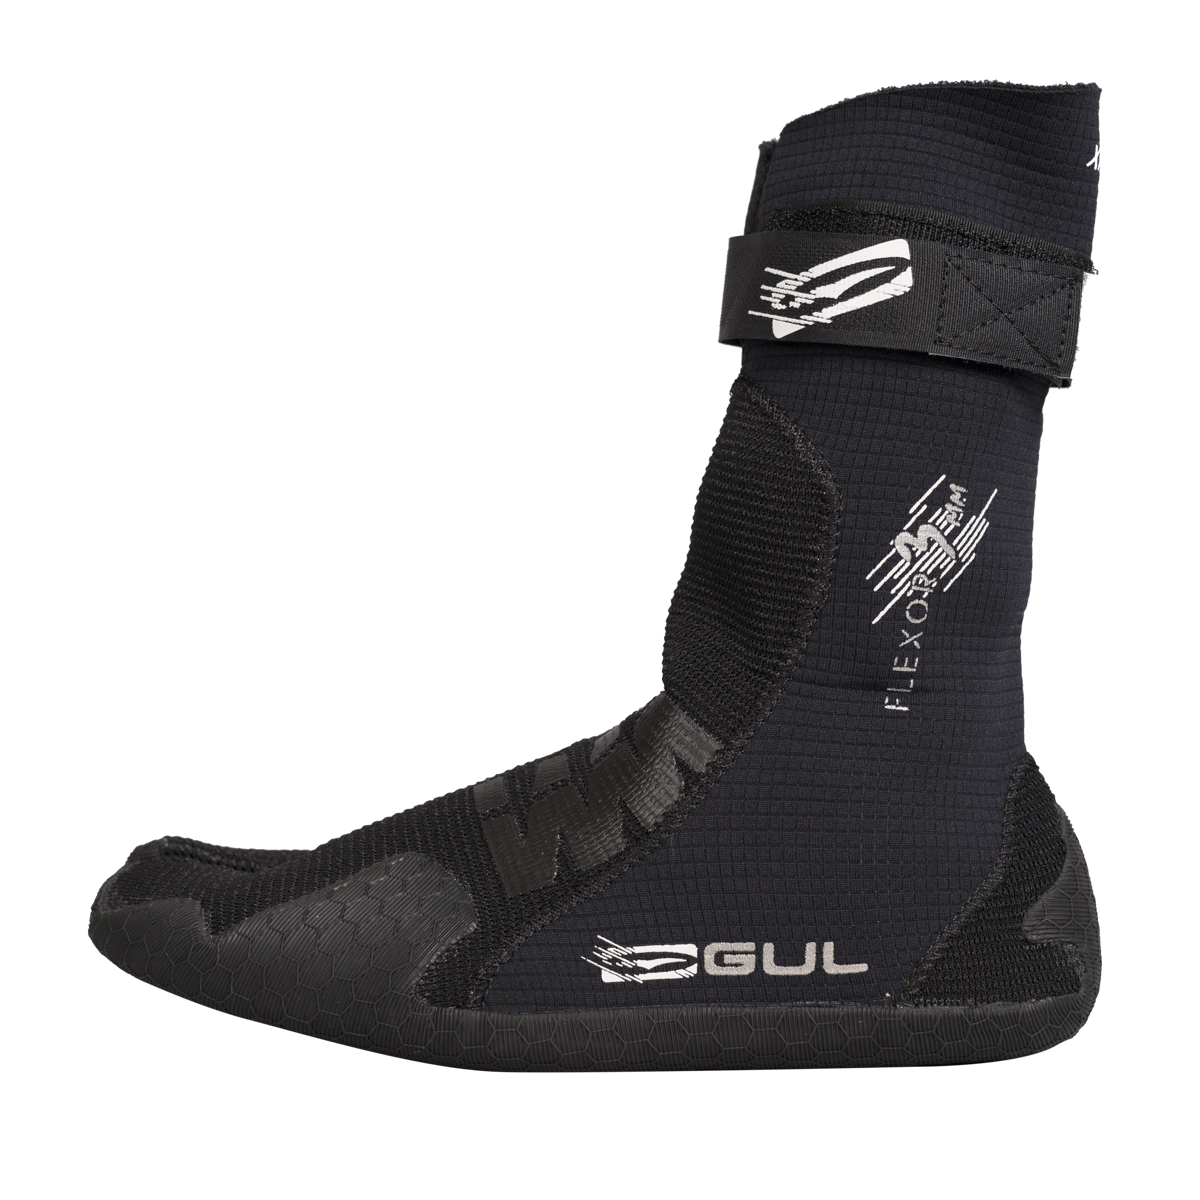 Gul Flexor 3mm Split Toe Boot Bo1299-B4